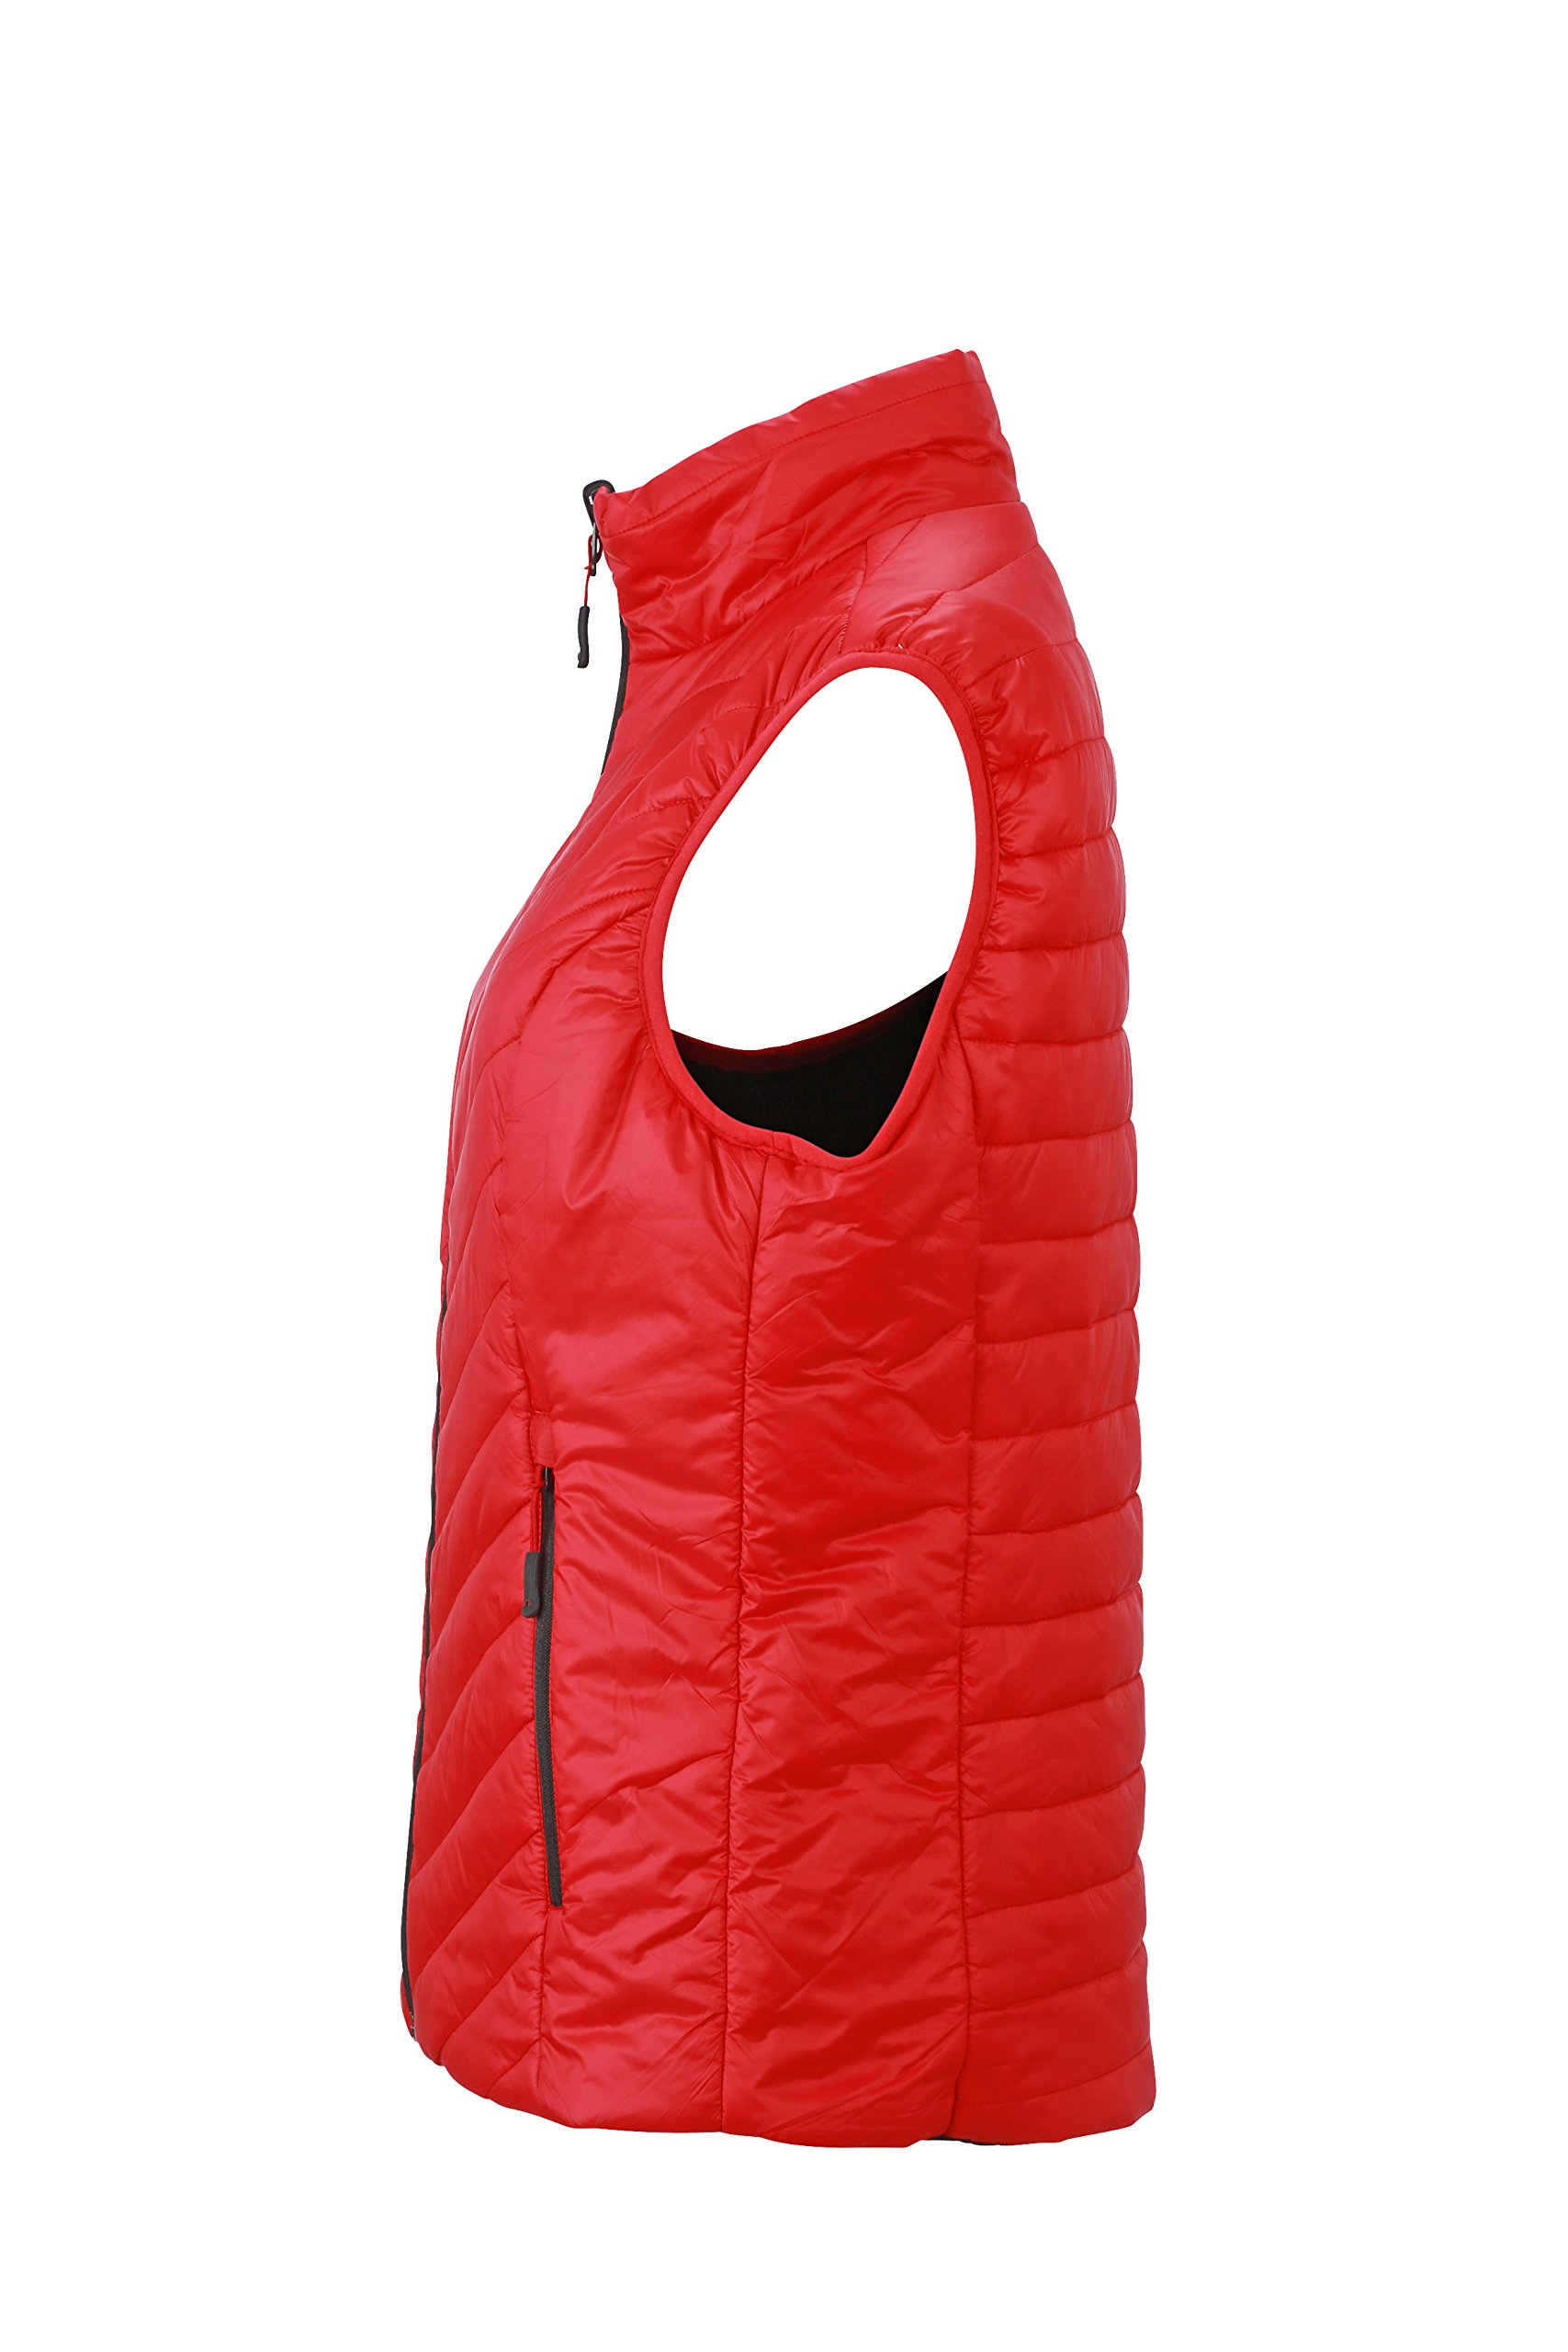 71BjAJvX3iL - James & Nicholson Women's Lightweight Vest Outdoor